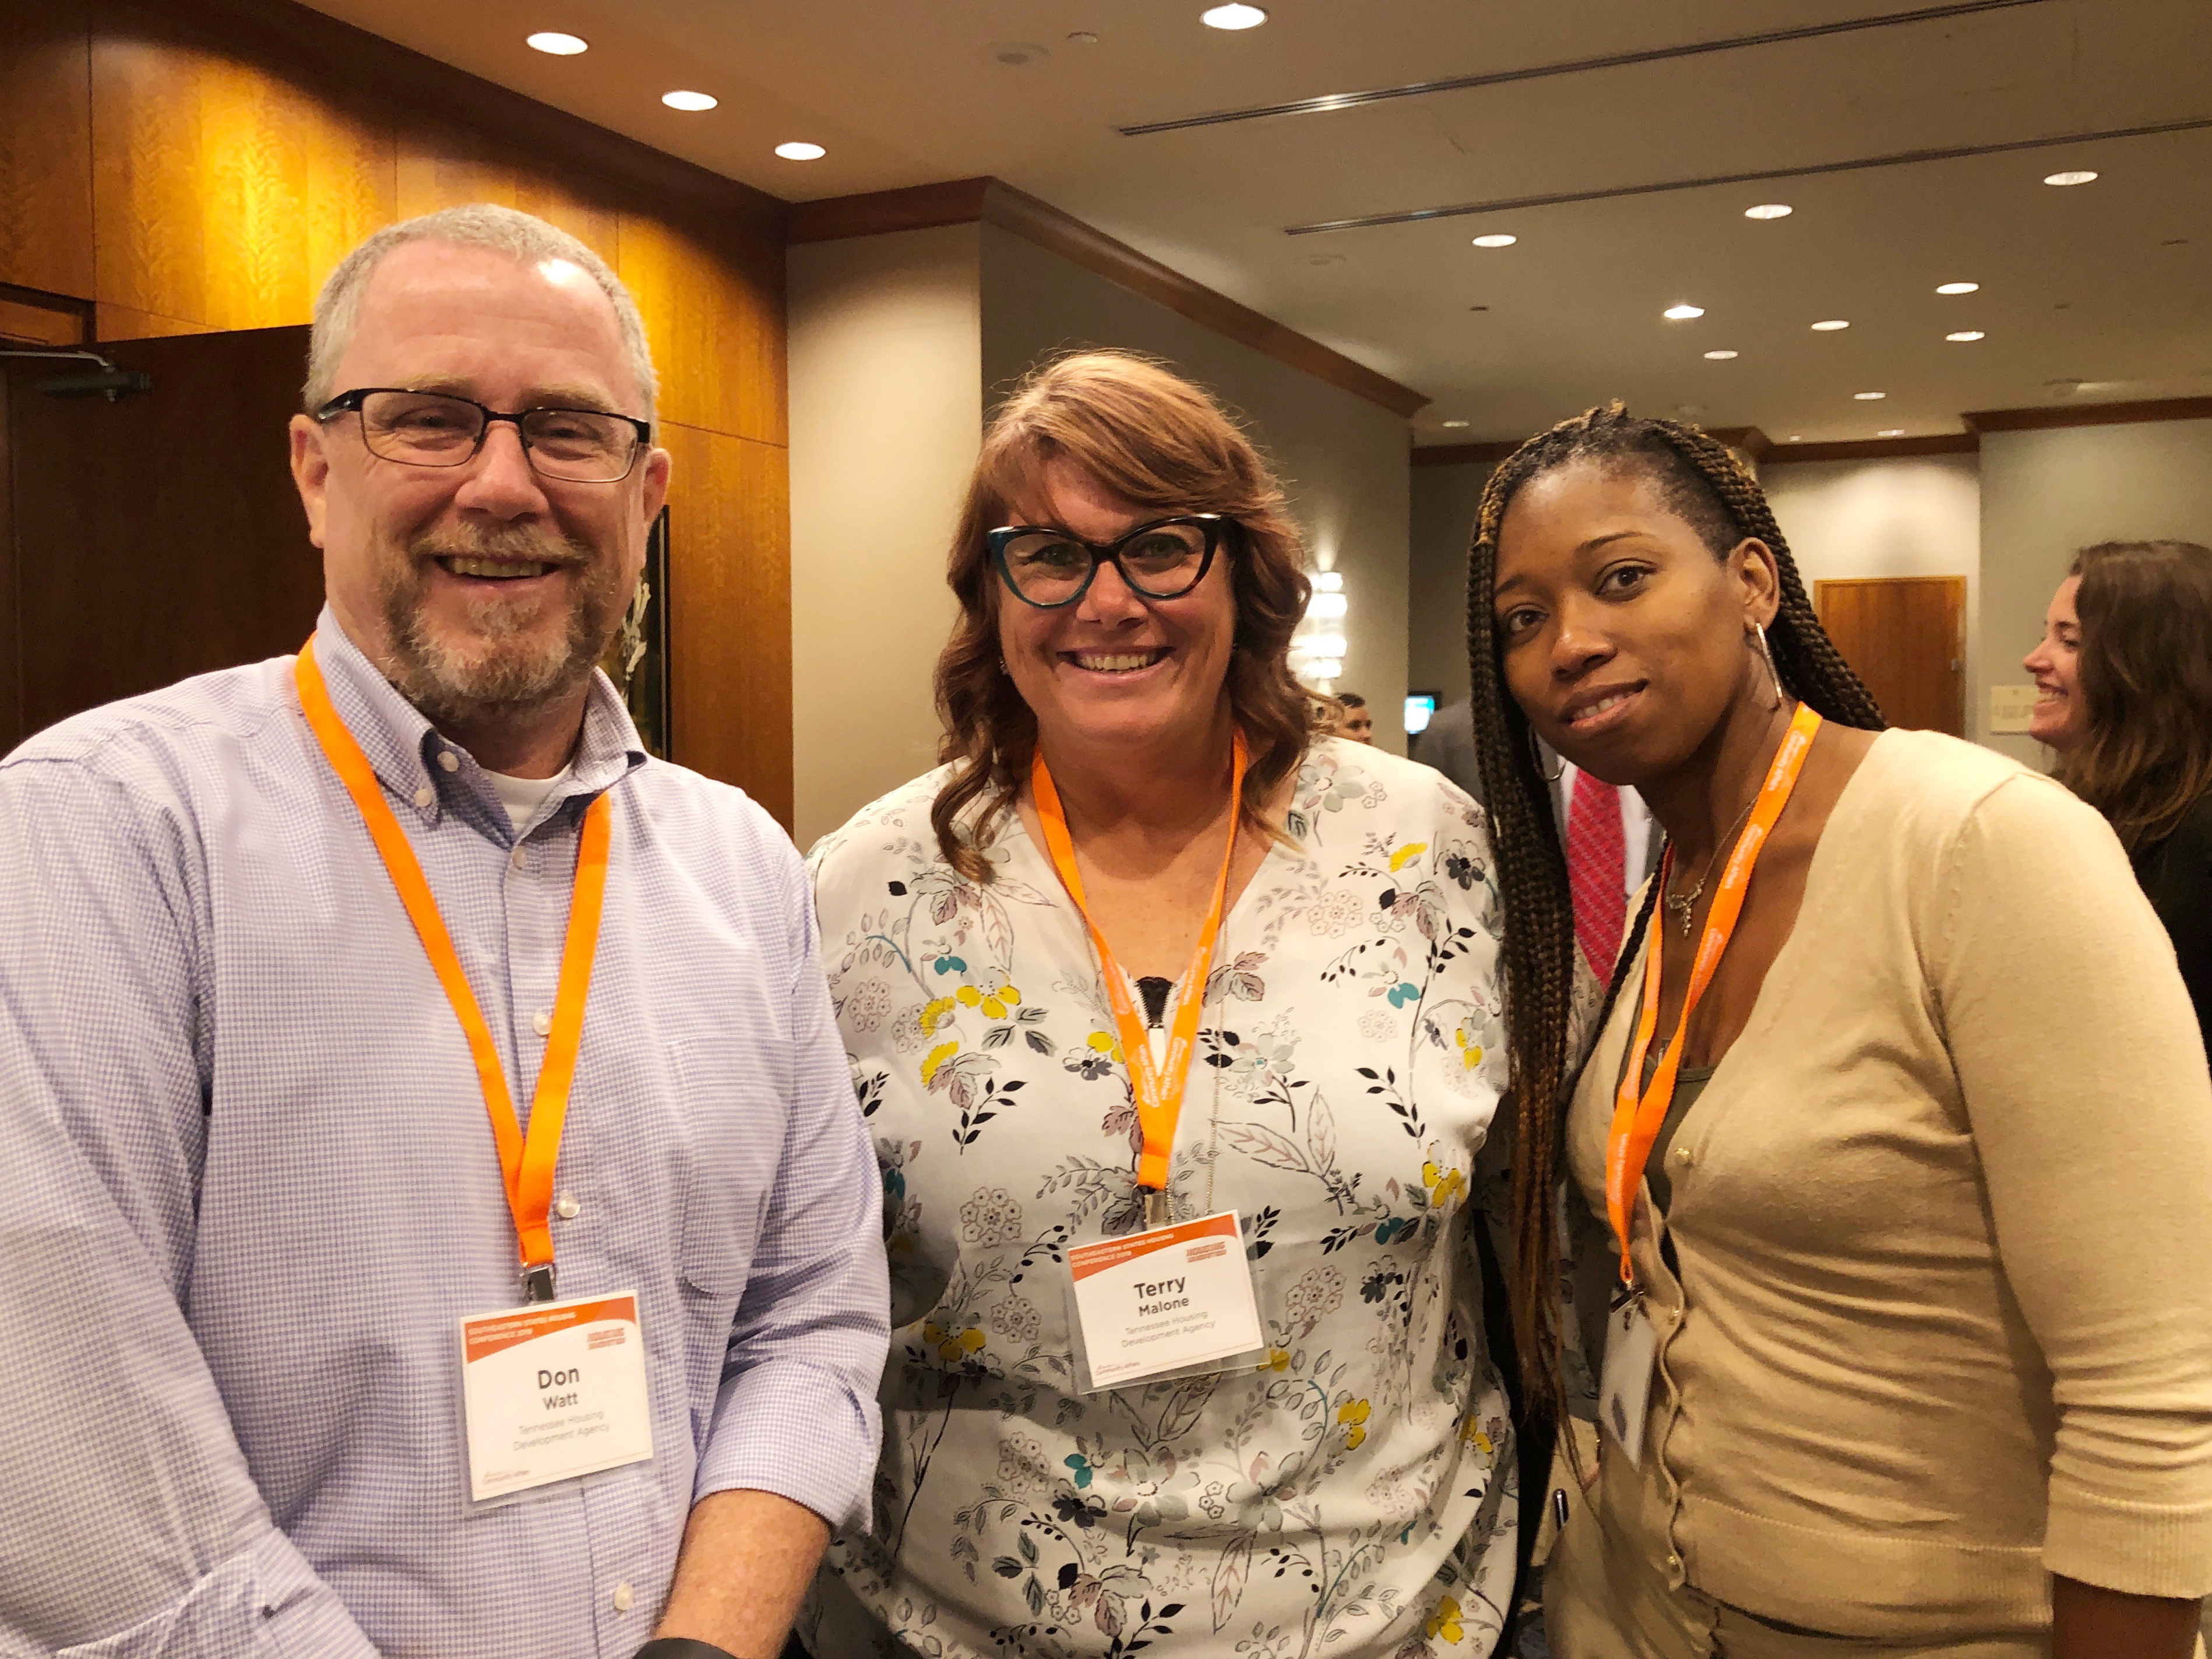 Three conference participants at the Southeastern States Housing Conference.